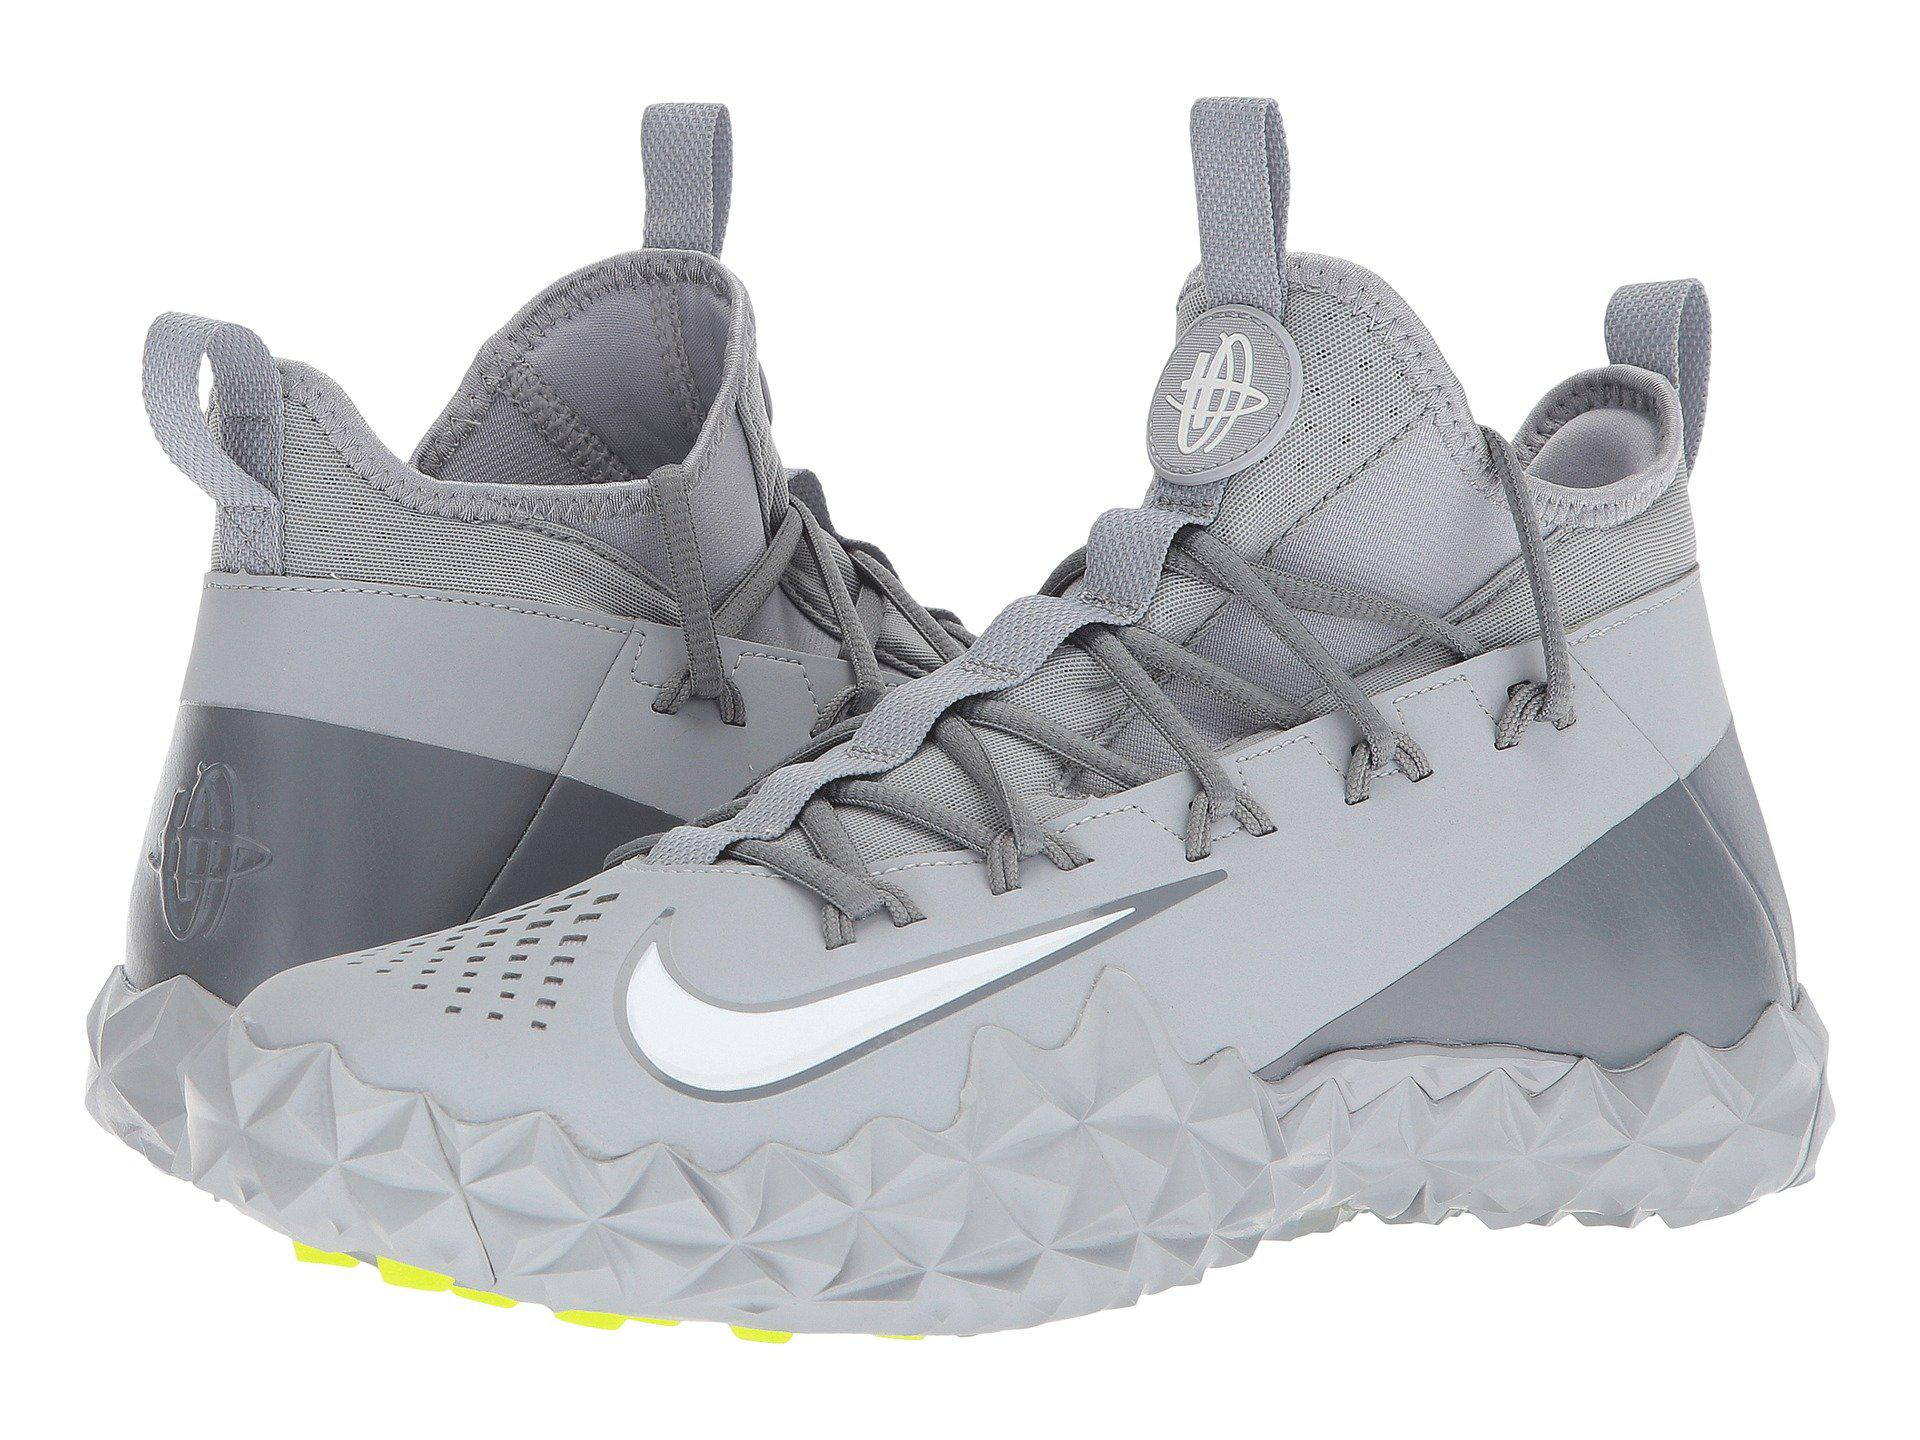 196cad1f0e36 Lyst - Nike Alpha Huarache 6 Elt Turf Lax in Gray for Men